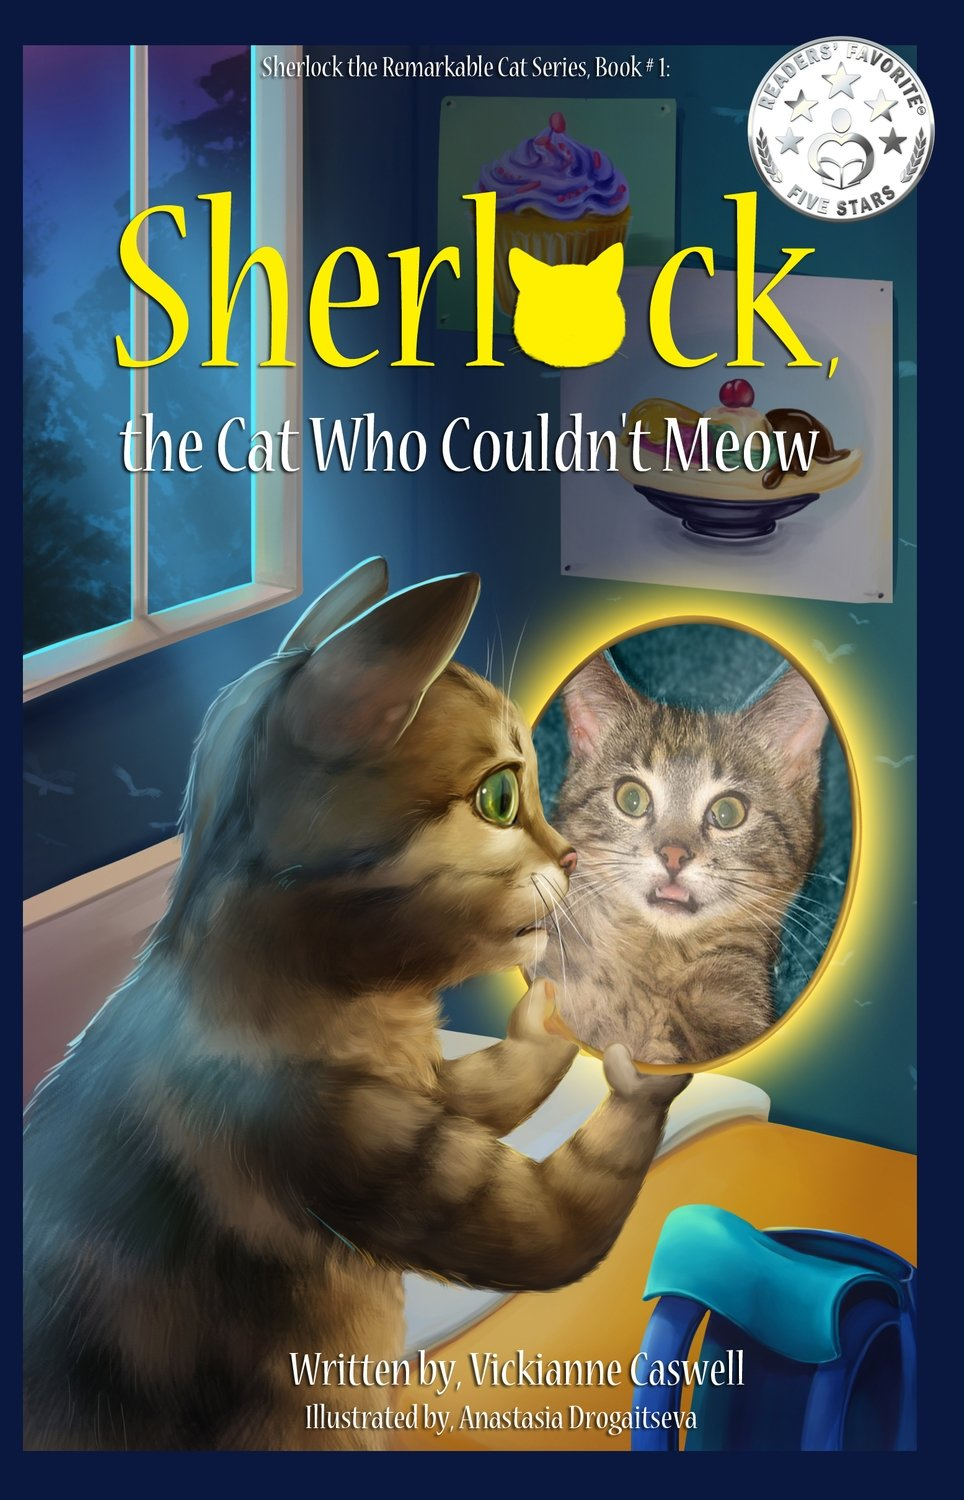 Sherlock, the Cat Who Couldn't Meow EPUB (Sherlock the Remarkable Cat Series # 1)